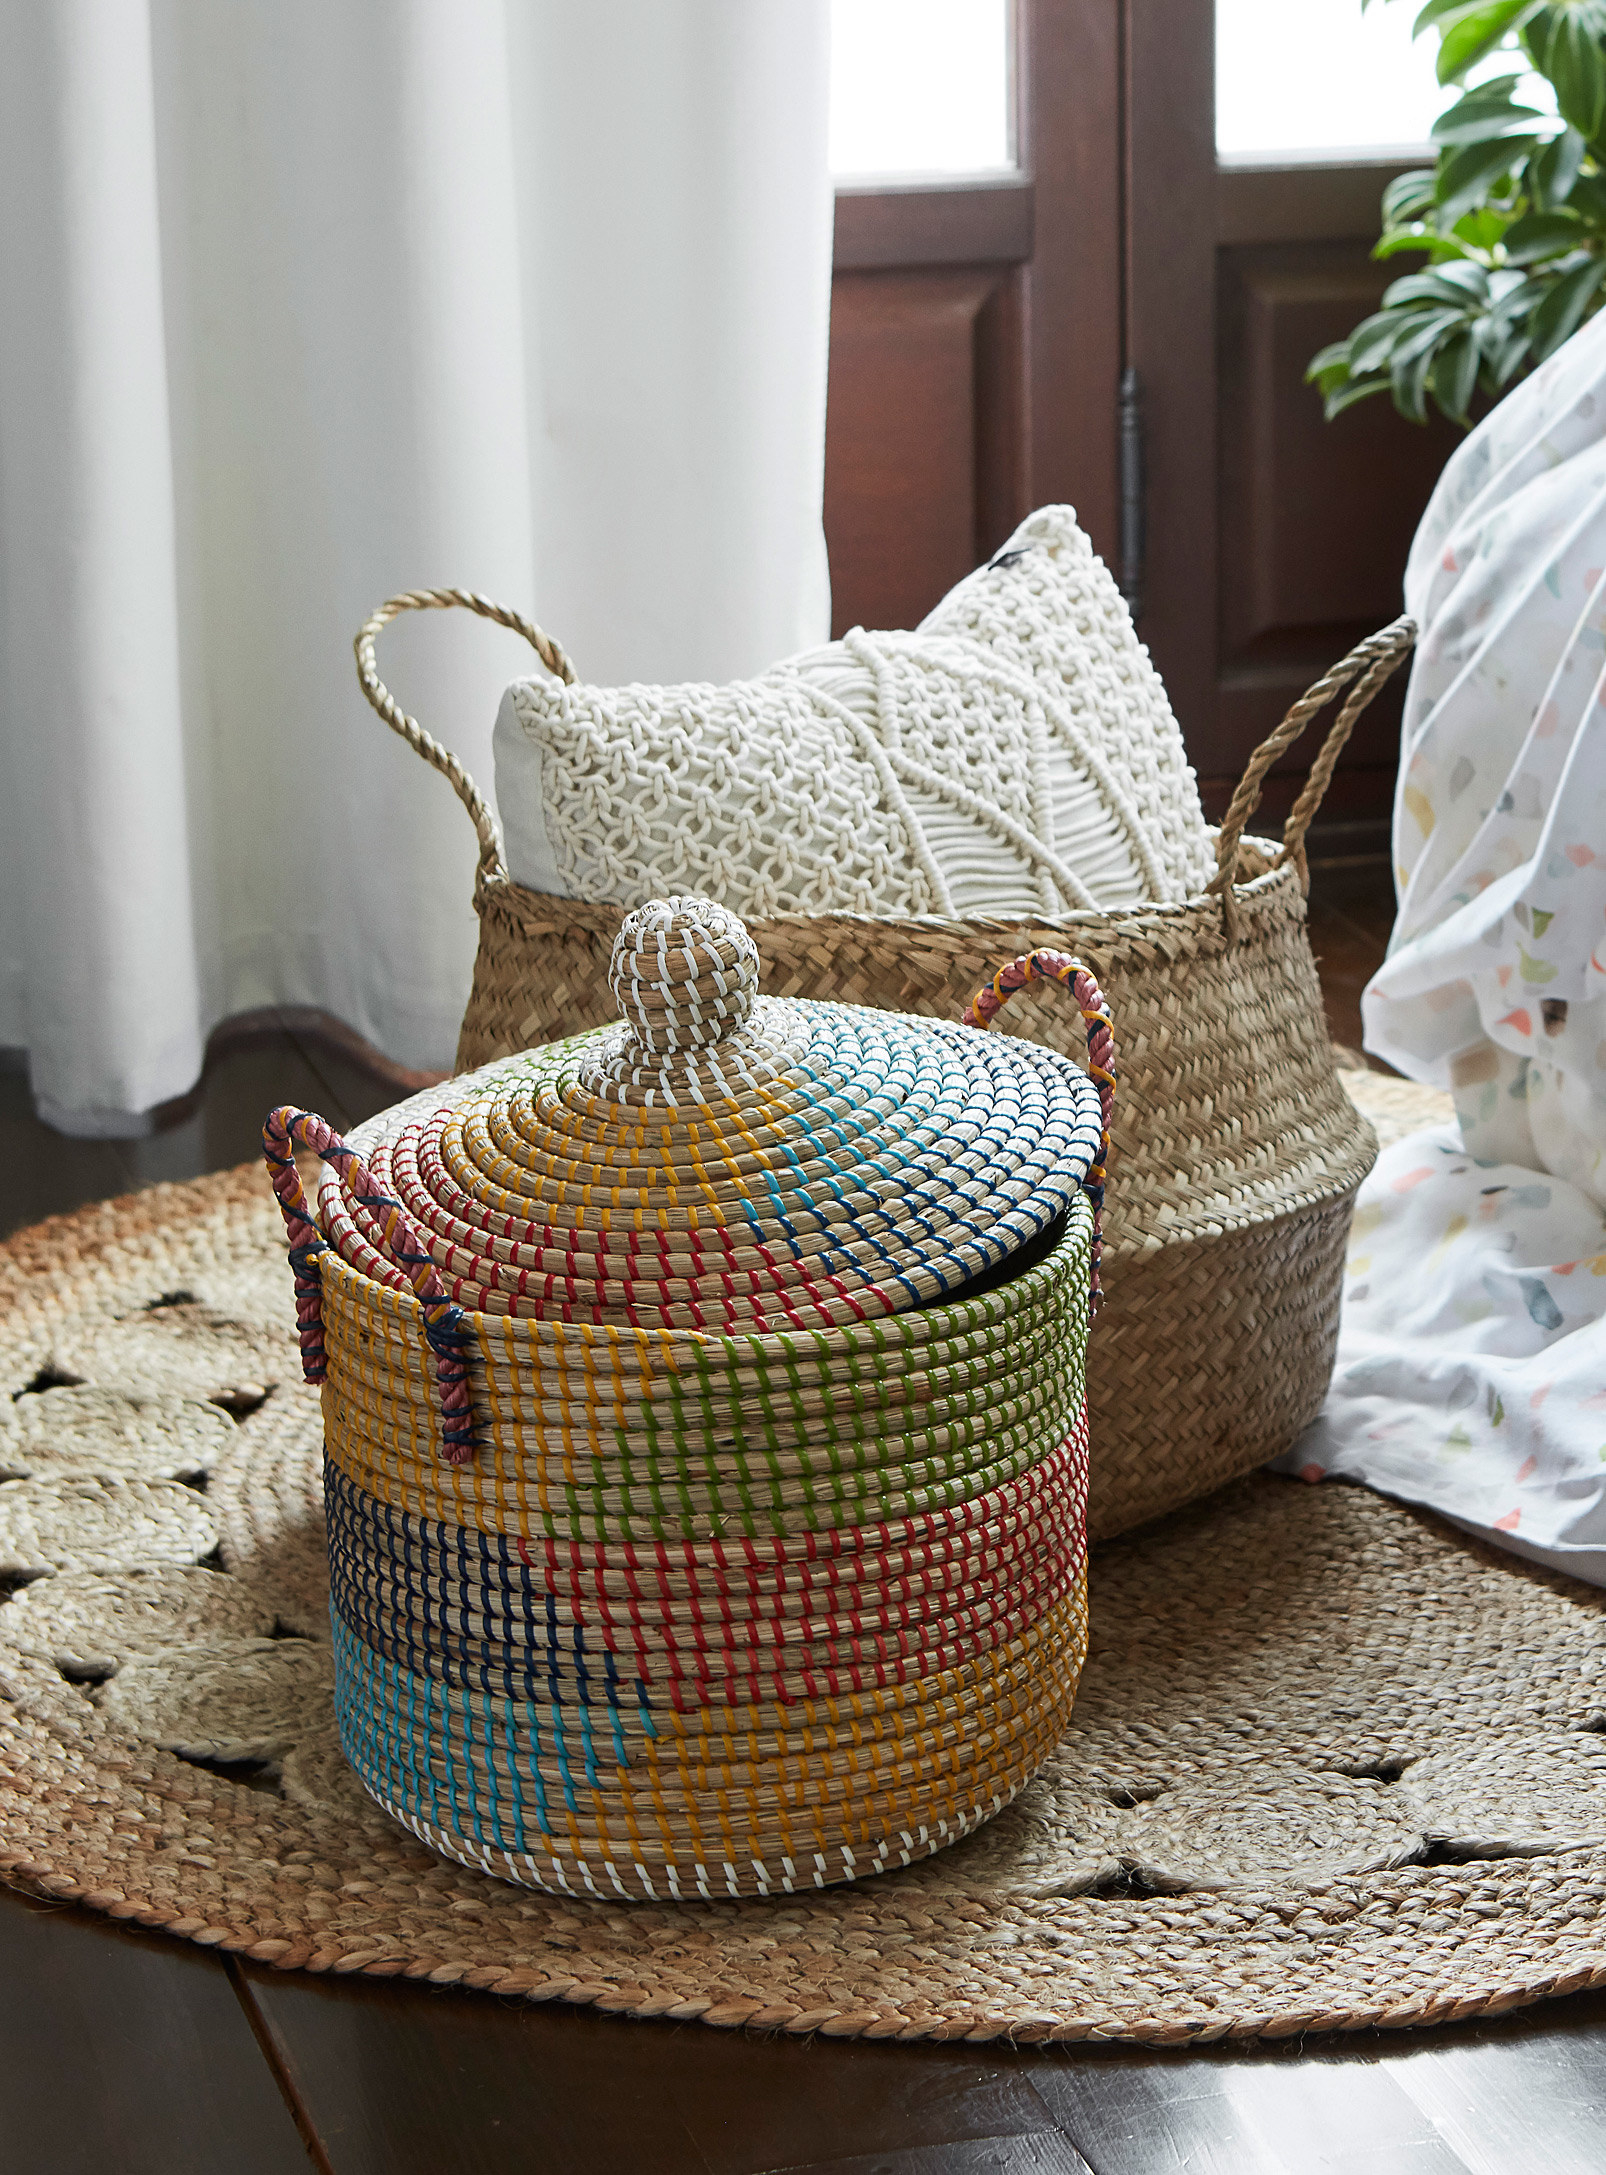 A woven basket with a lid in a living room